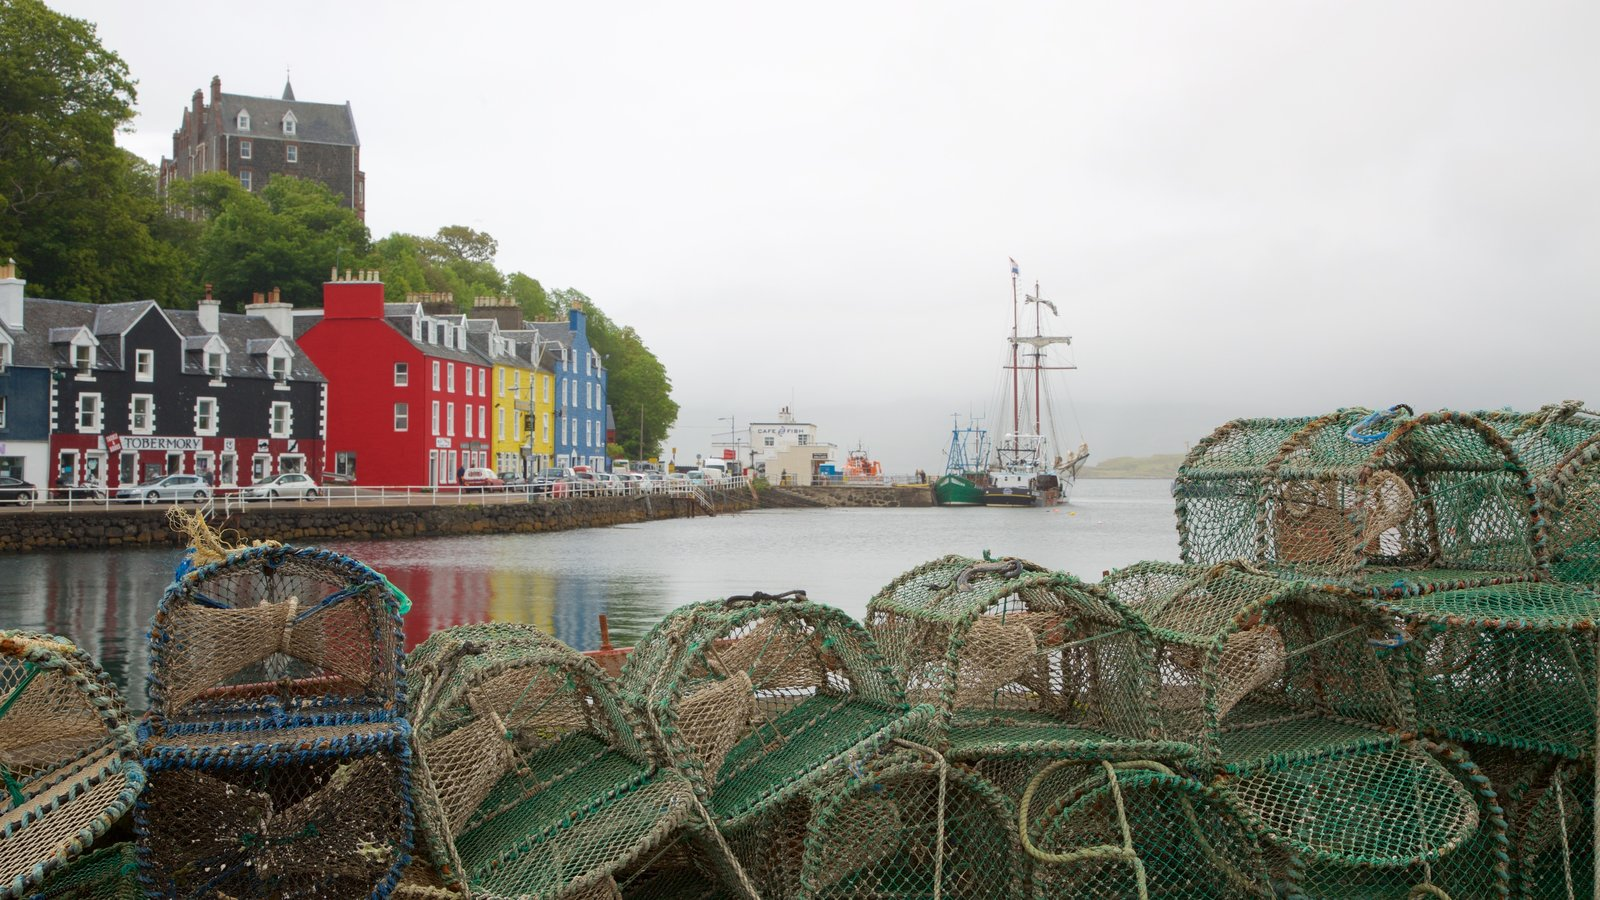 Isle of Mull which includes fishing, a coastal town and a bay or harbor